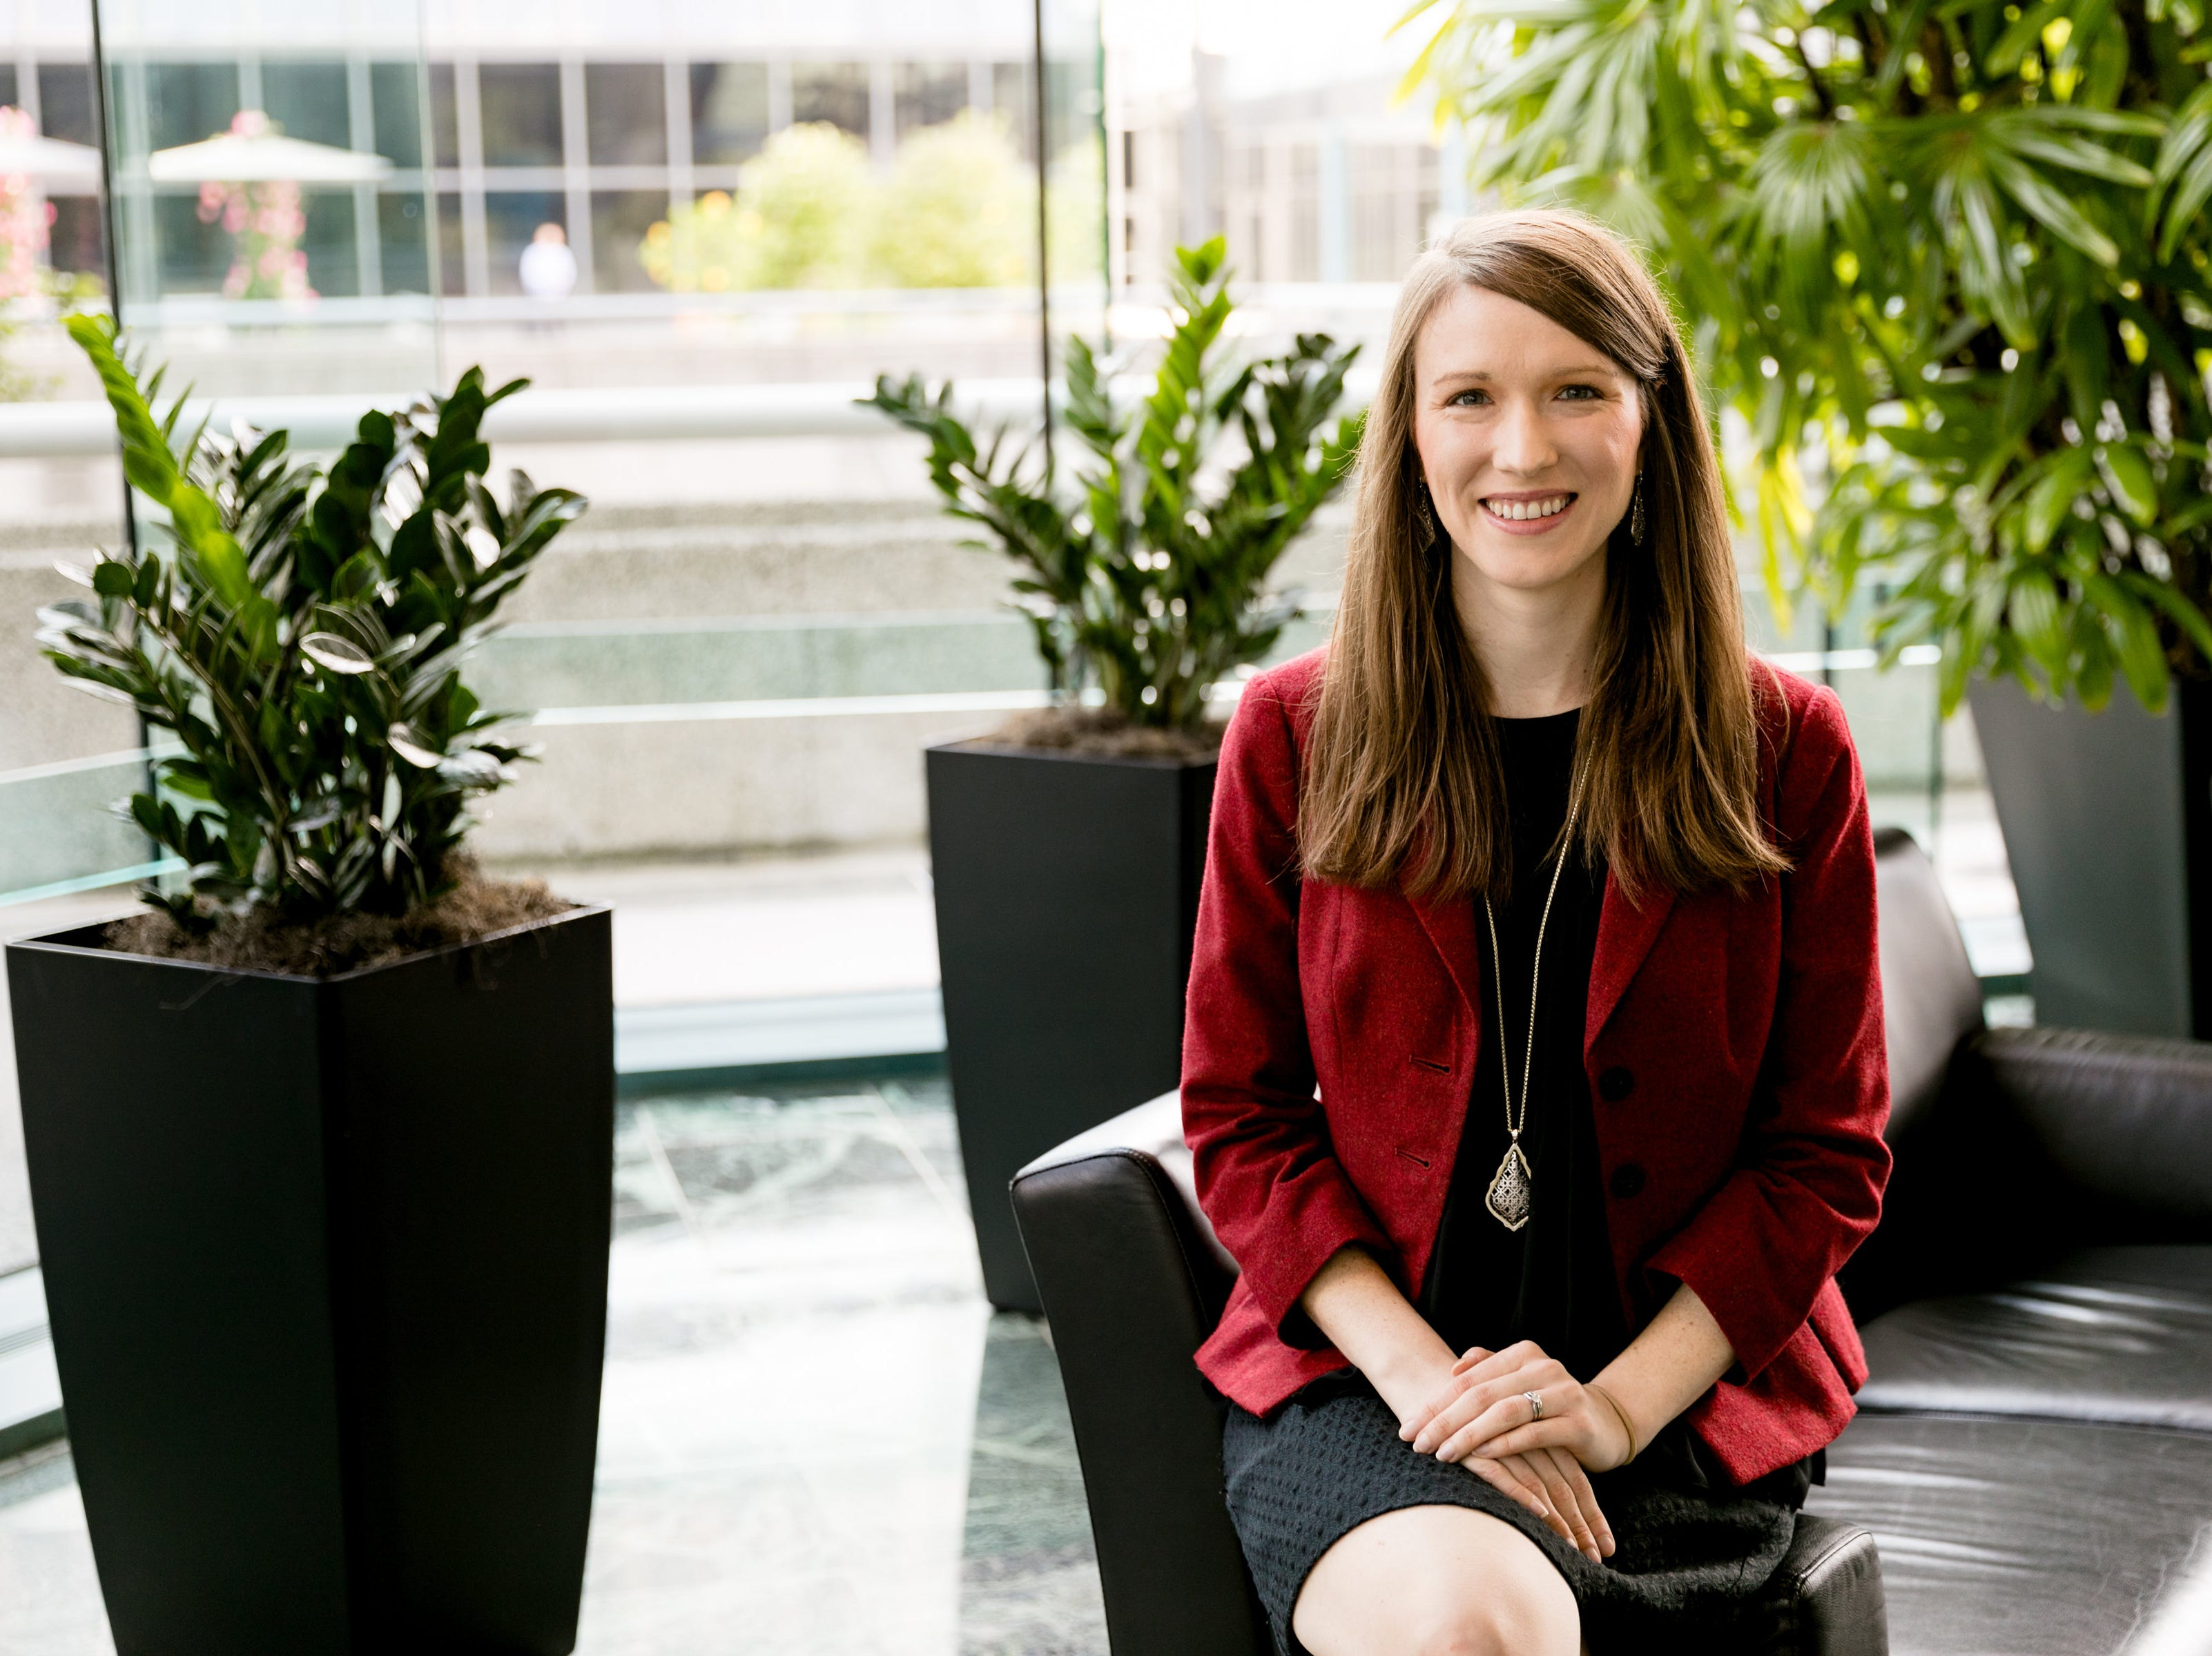 Burkhart & Company, P.C., a Knoxville tax and business advisory CPA firm, hired CPA Anna Tilson as a tax supervisor.